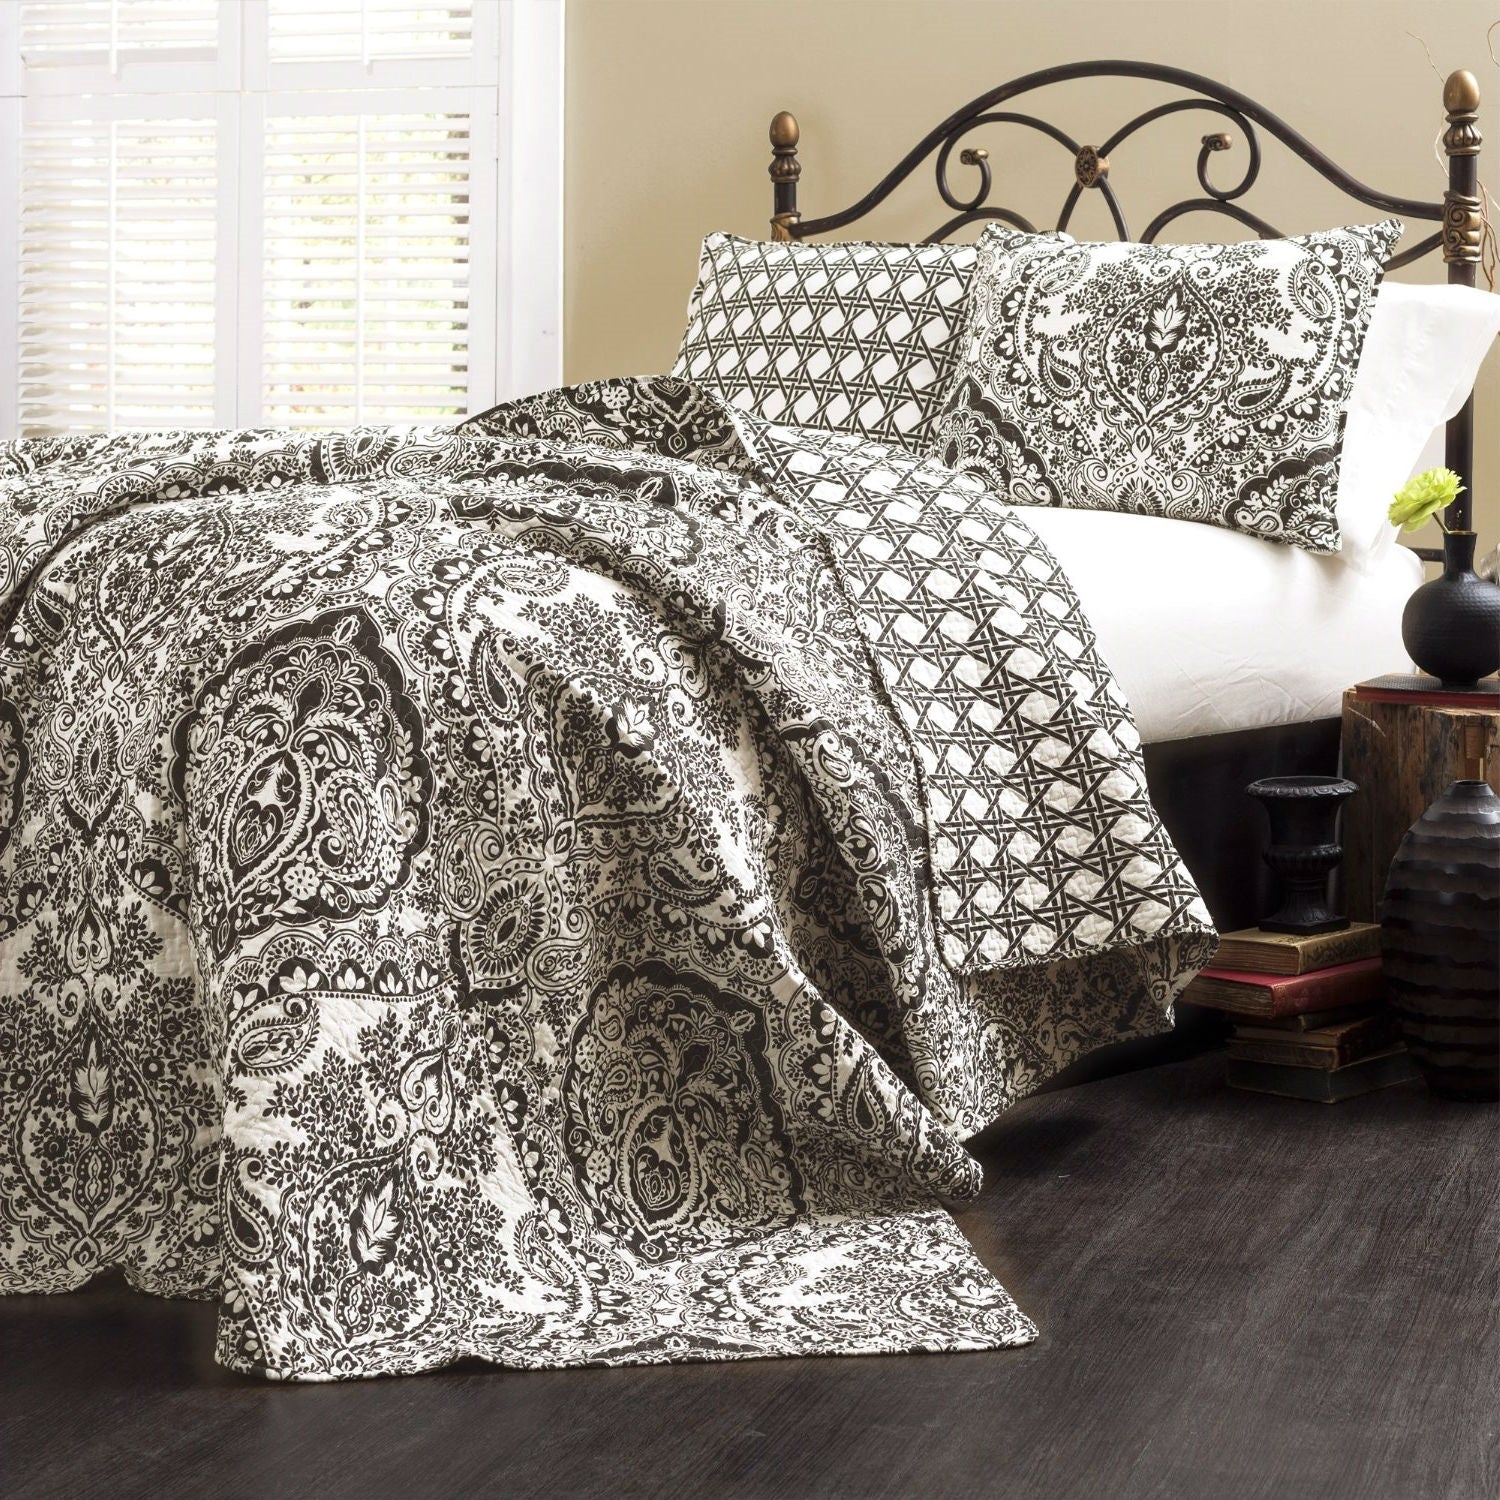 Queen size 3-Piece Quilt Set 100-Percent Cotton in Charcoal Damask